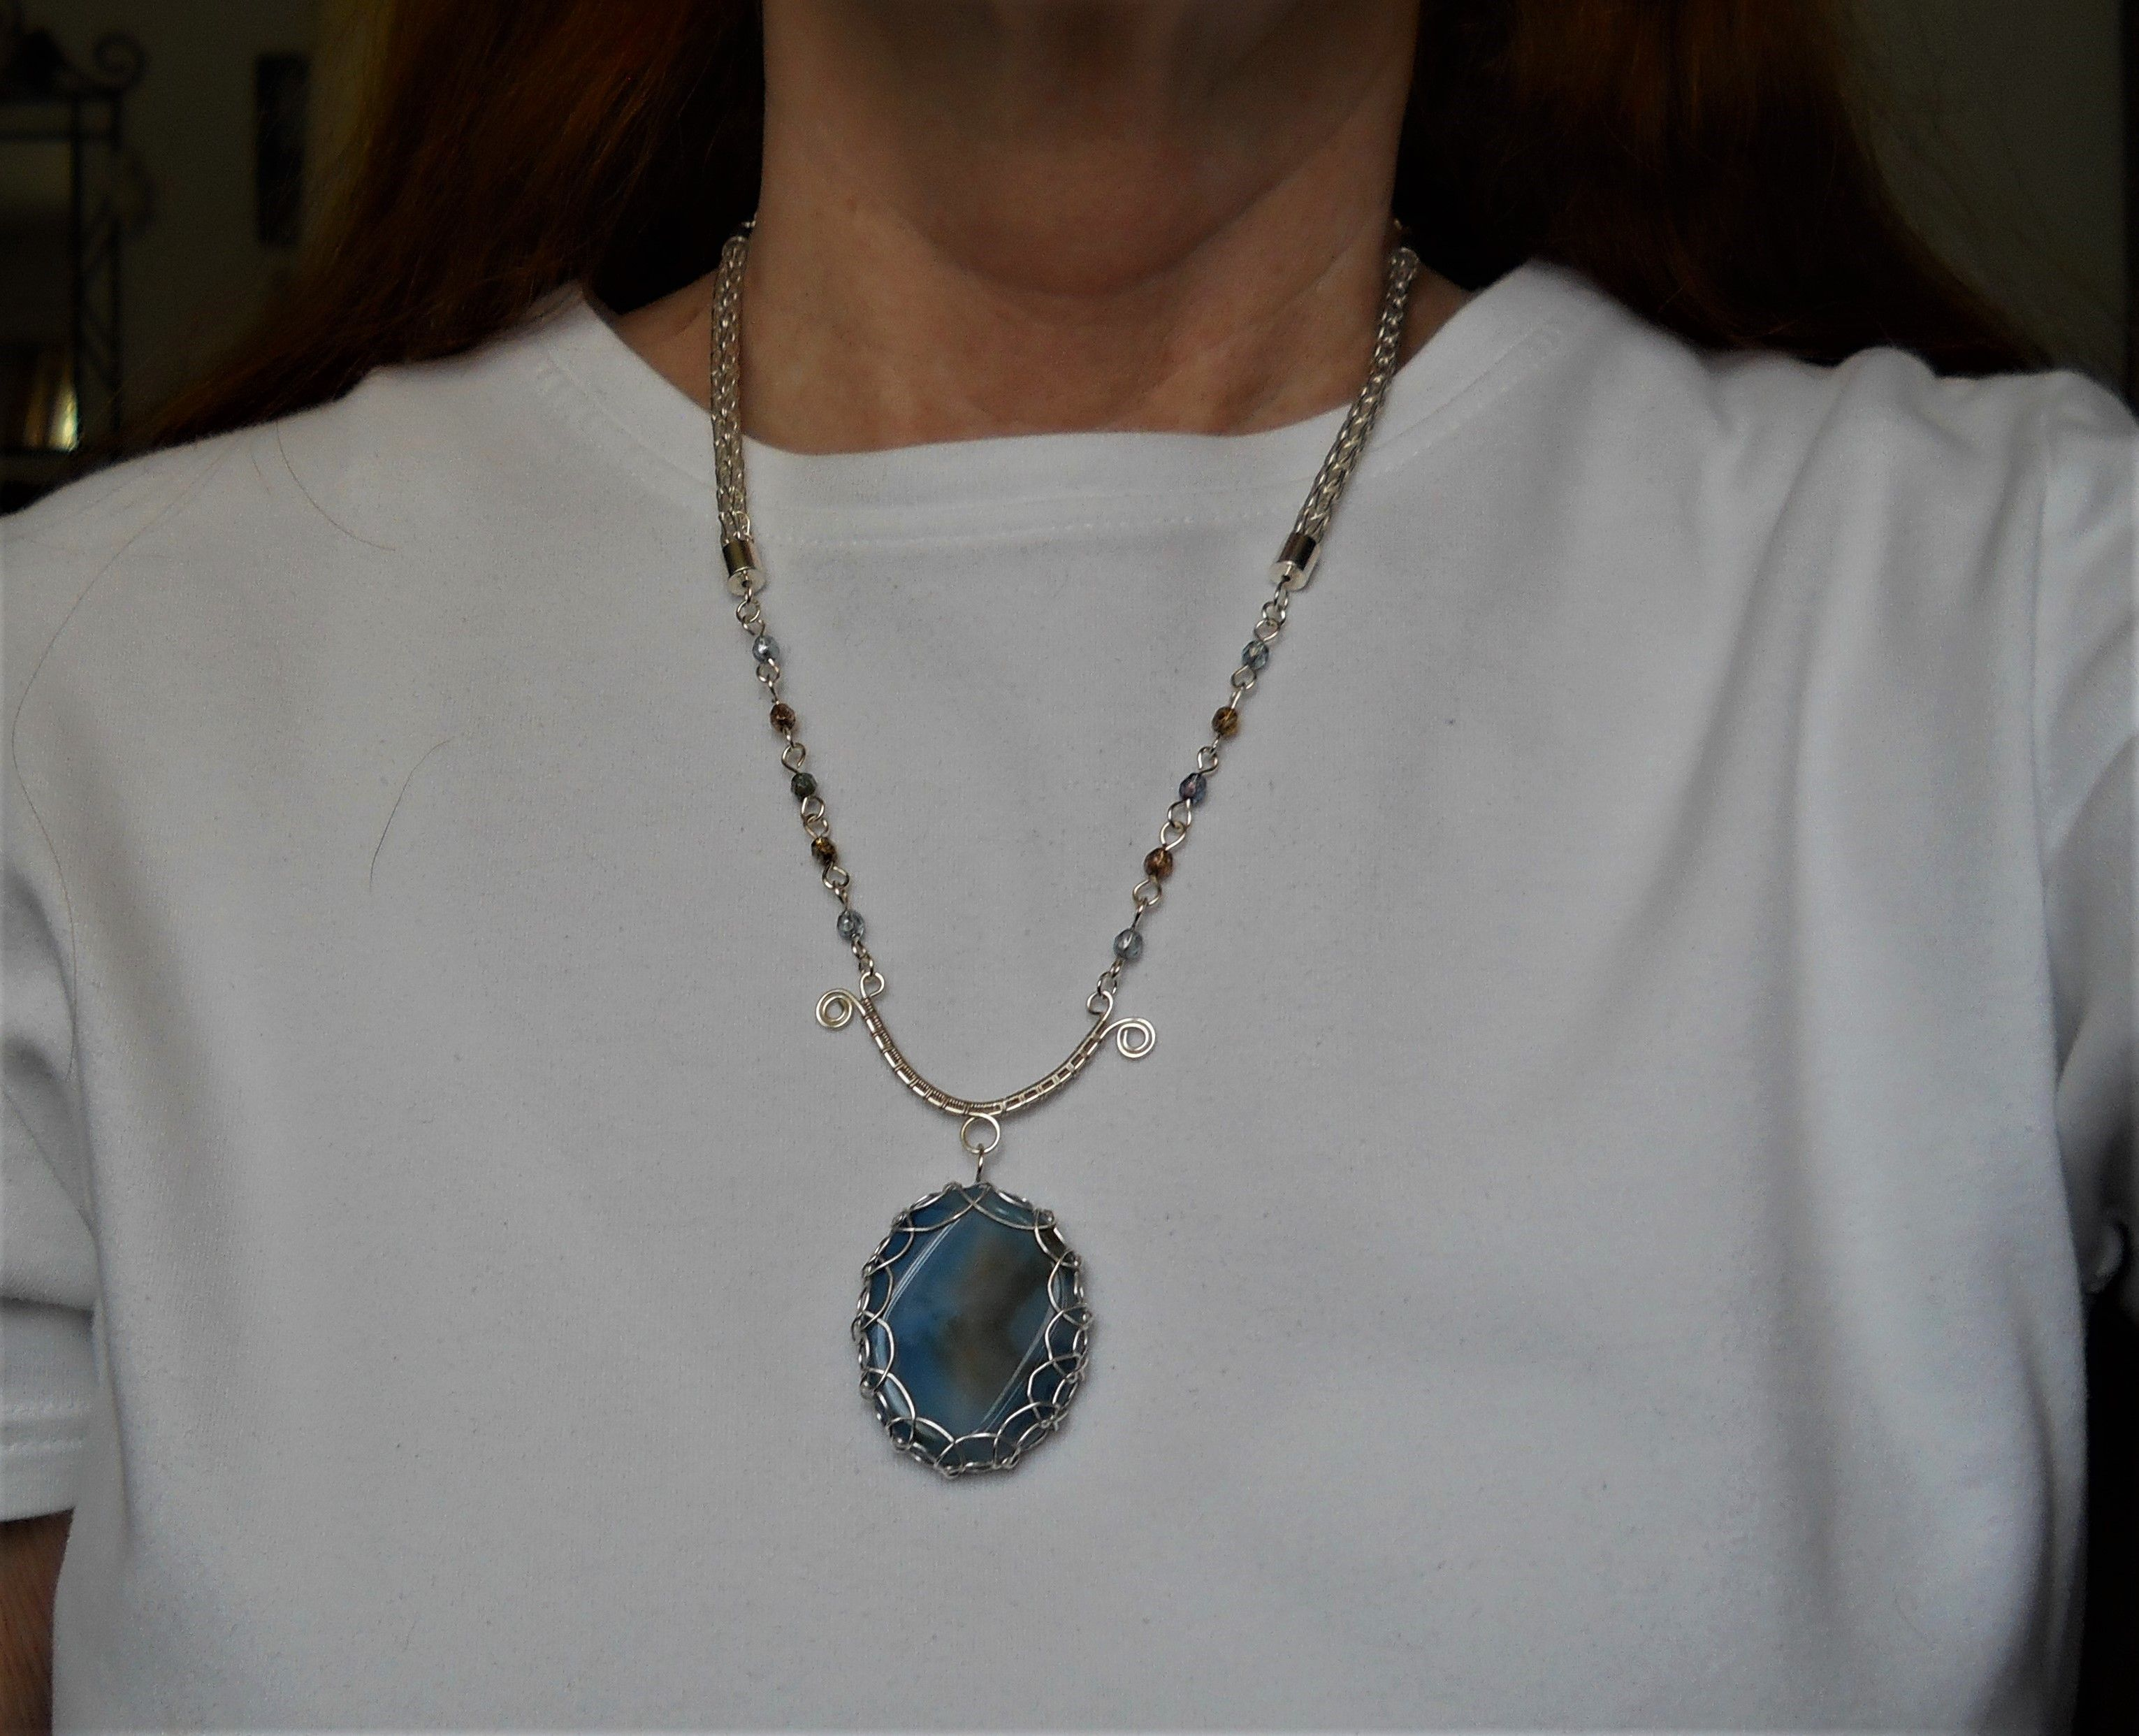 Blue agate with blue and topaz crystals with silver Viking weave sections